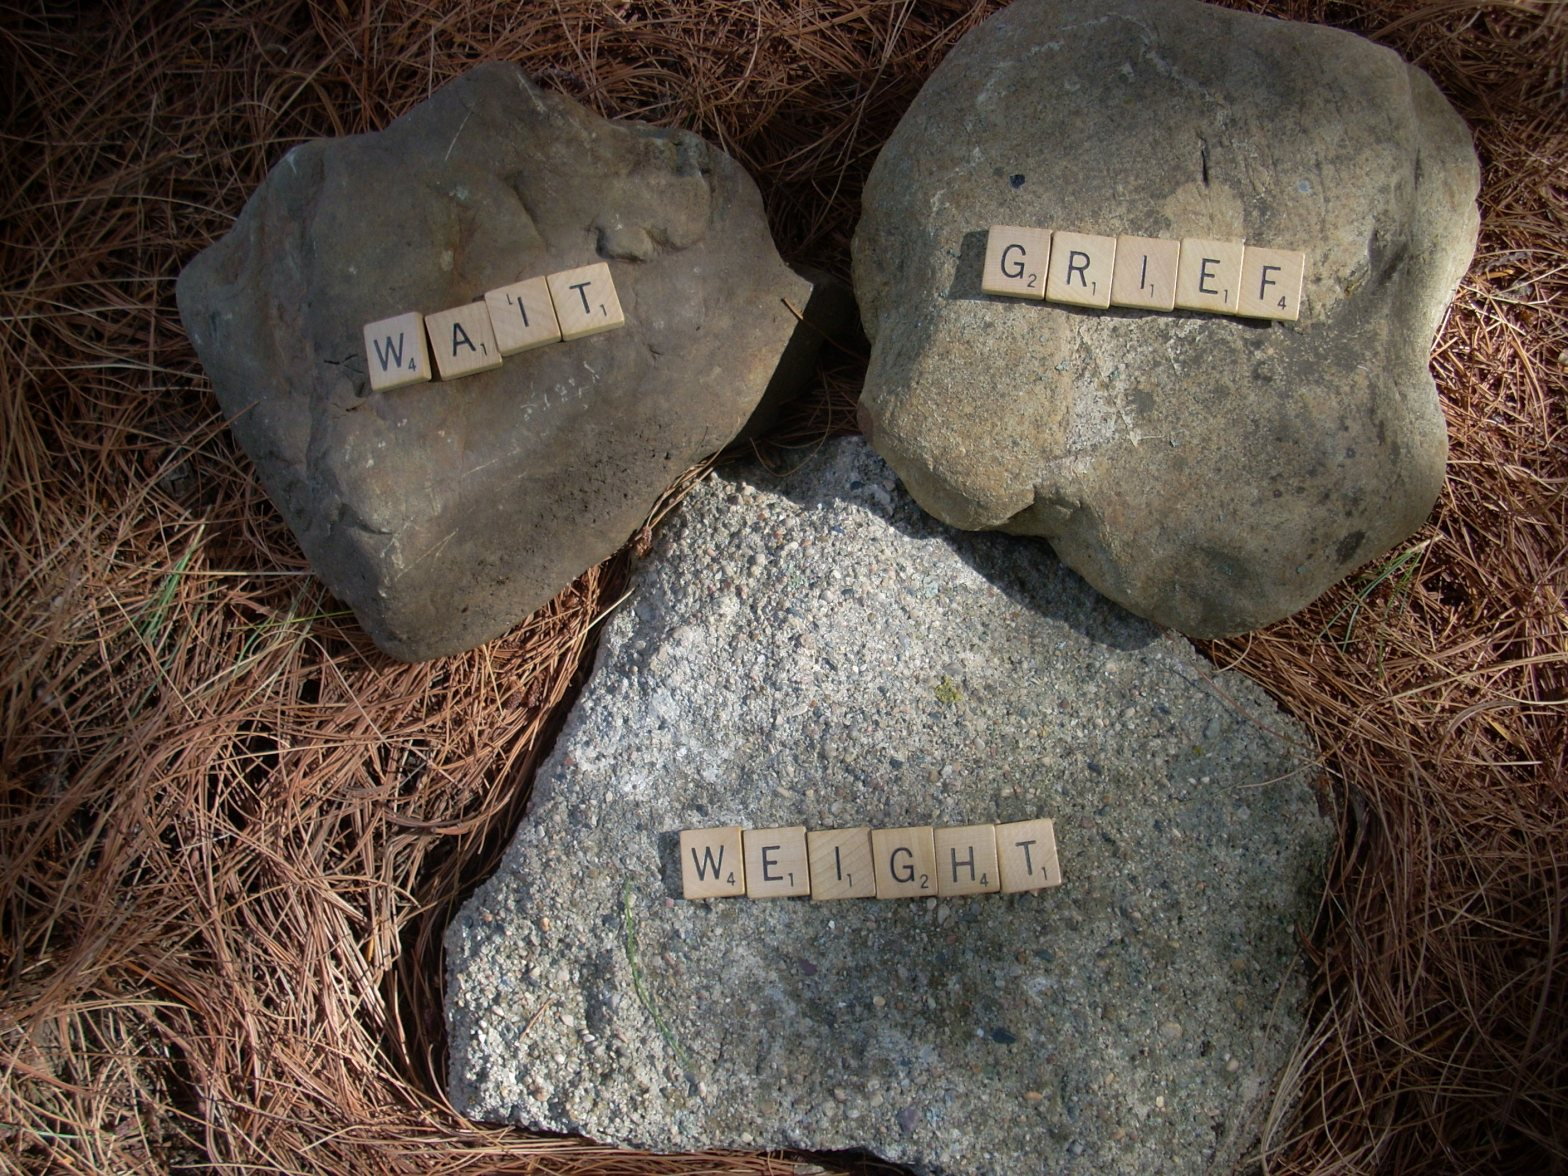 photo of three large rocks with each one displaying one word of the three word title: Wait Grief Weight